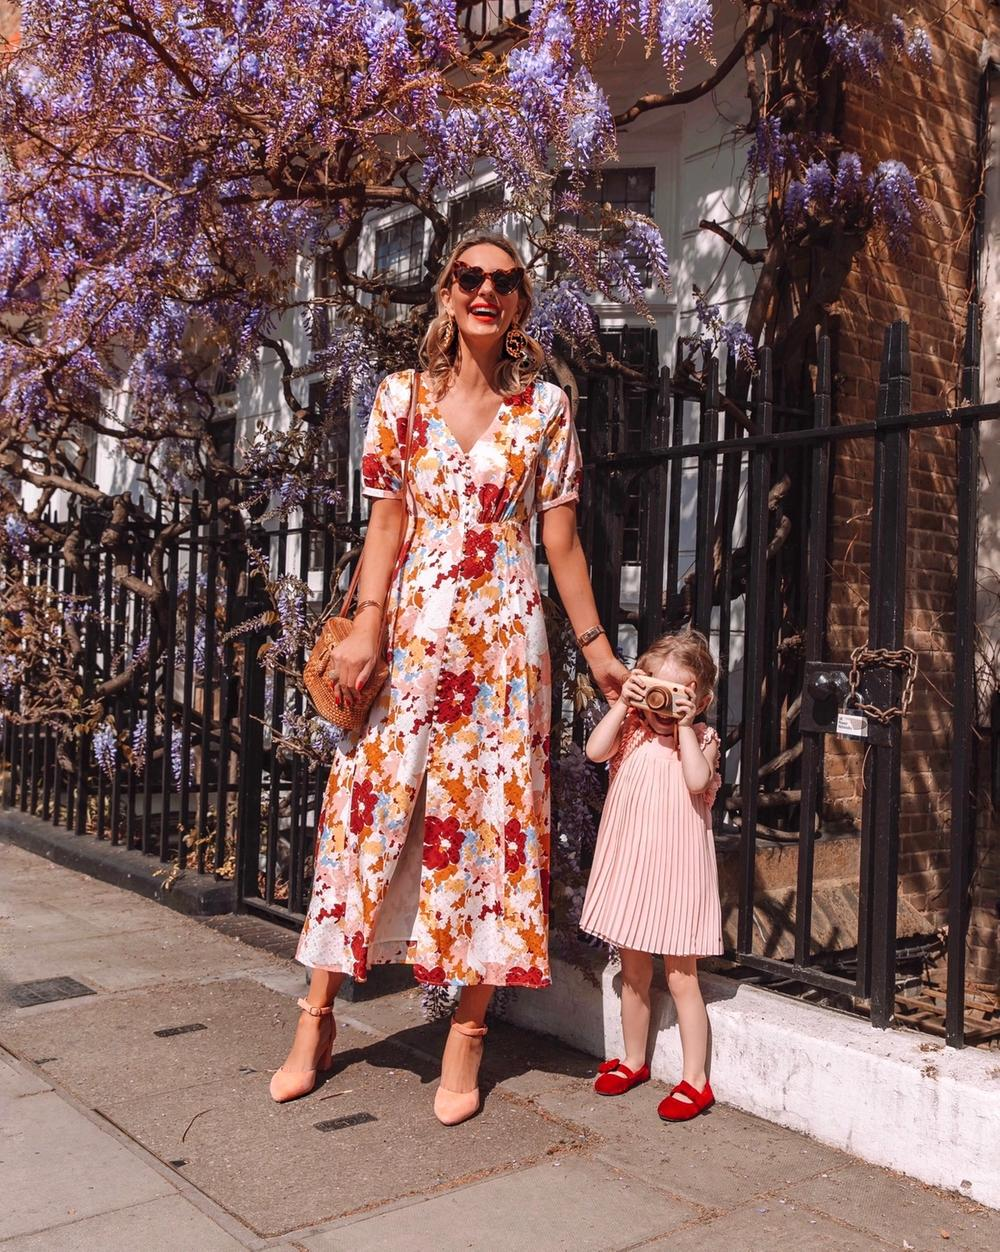 Bared_Footwear_Hannah_Strafford_Taylor_Womens_Kea_Heels_Mothers_Day_London